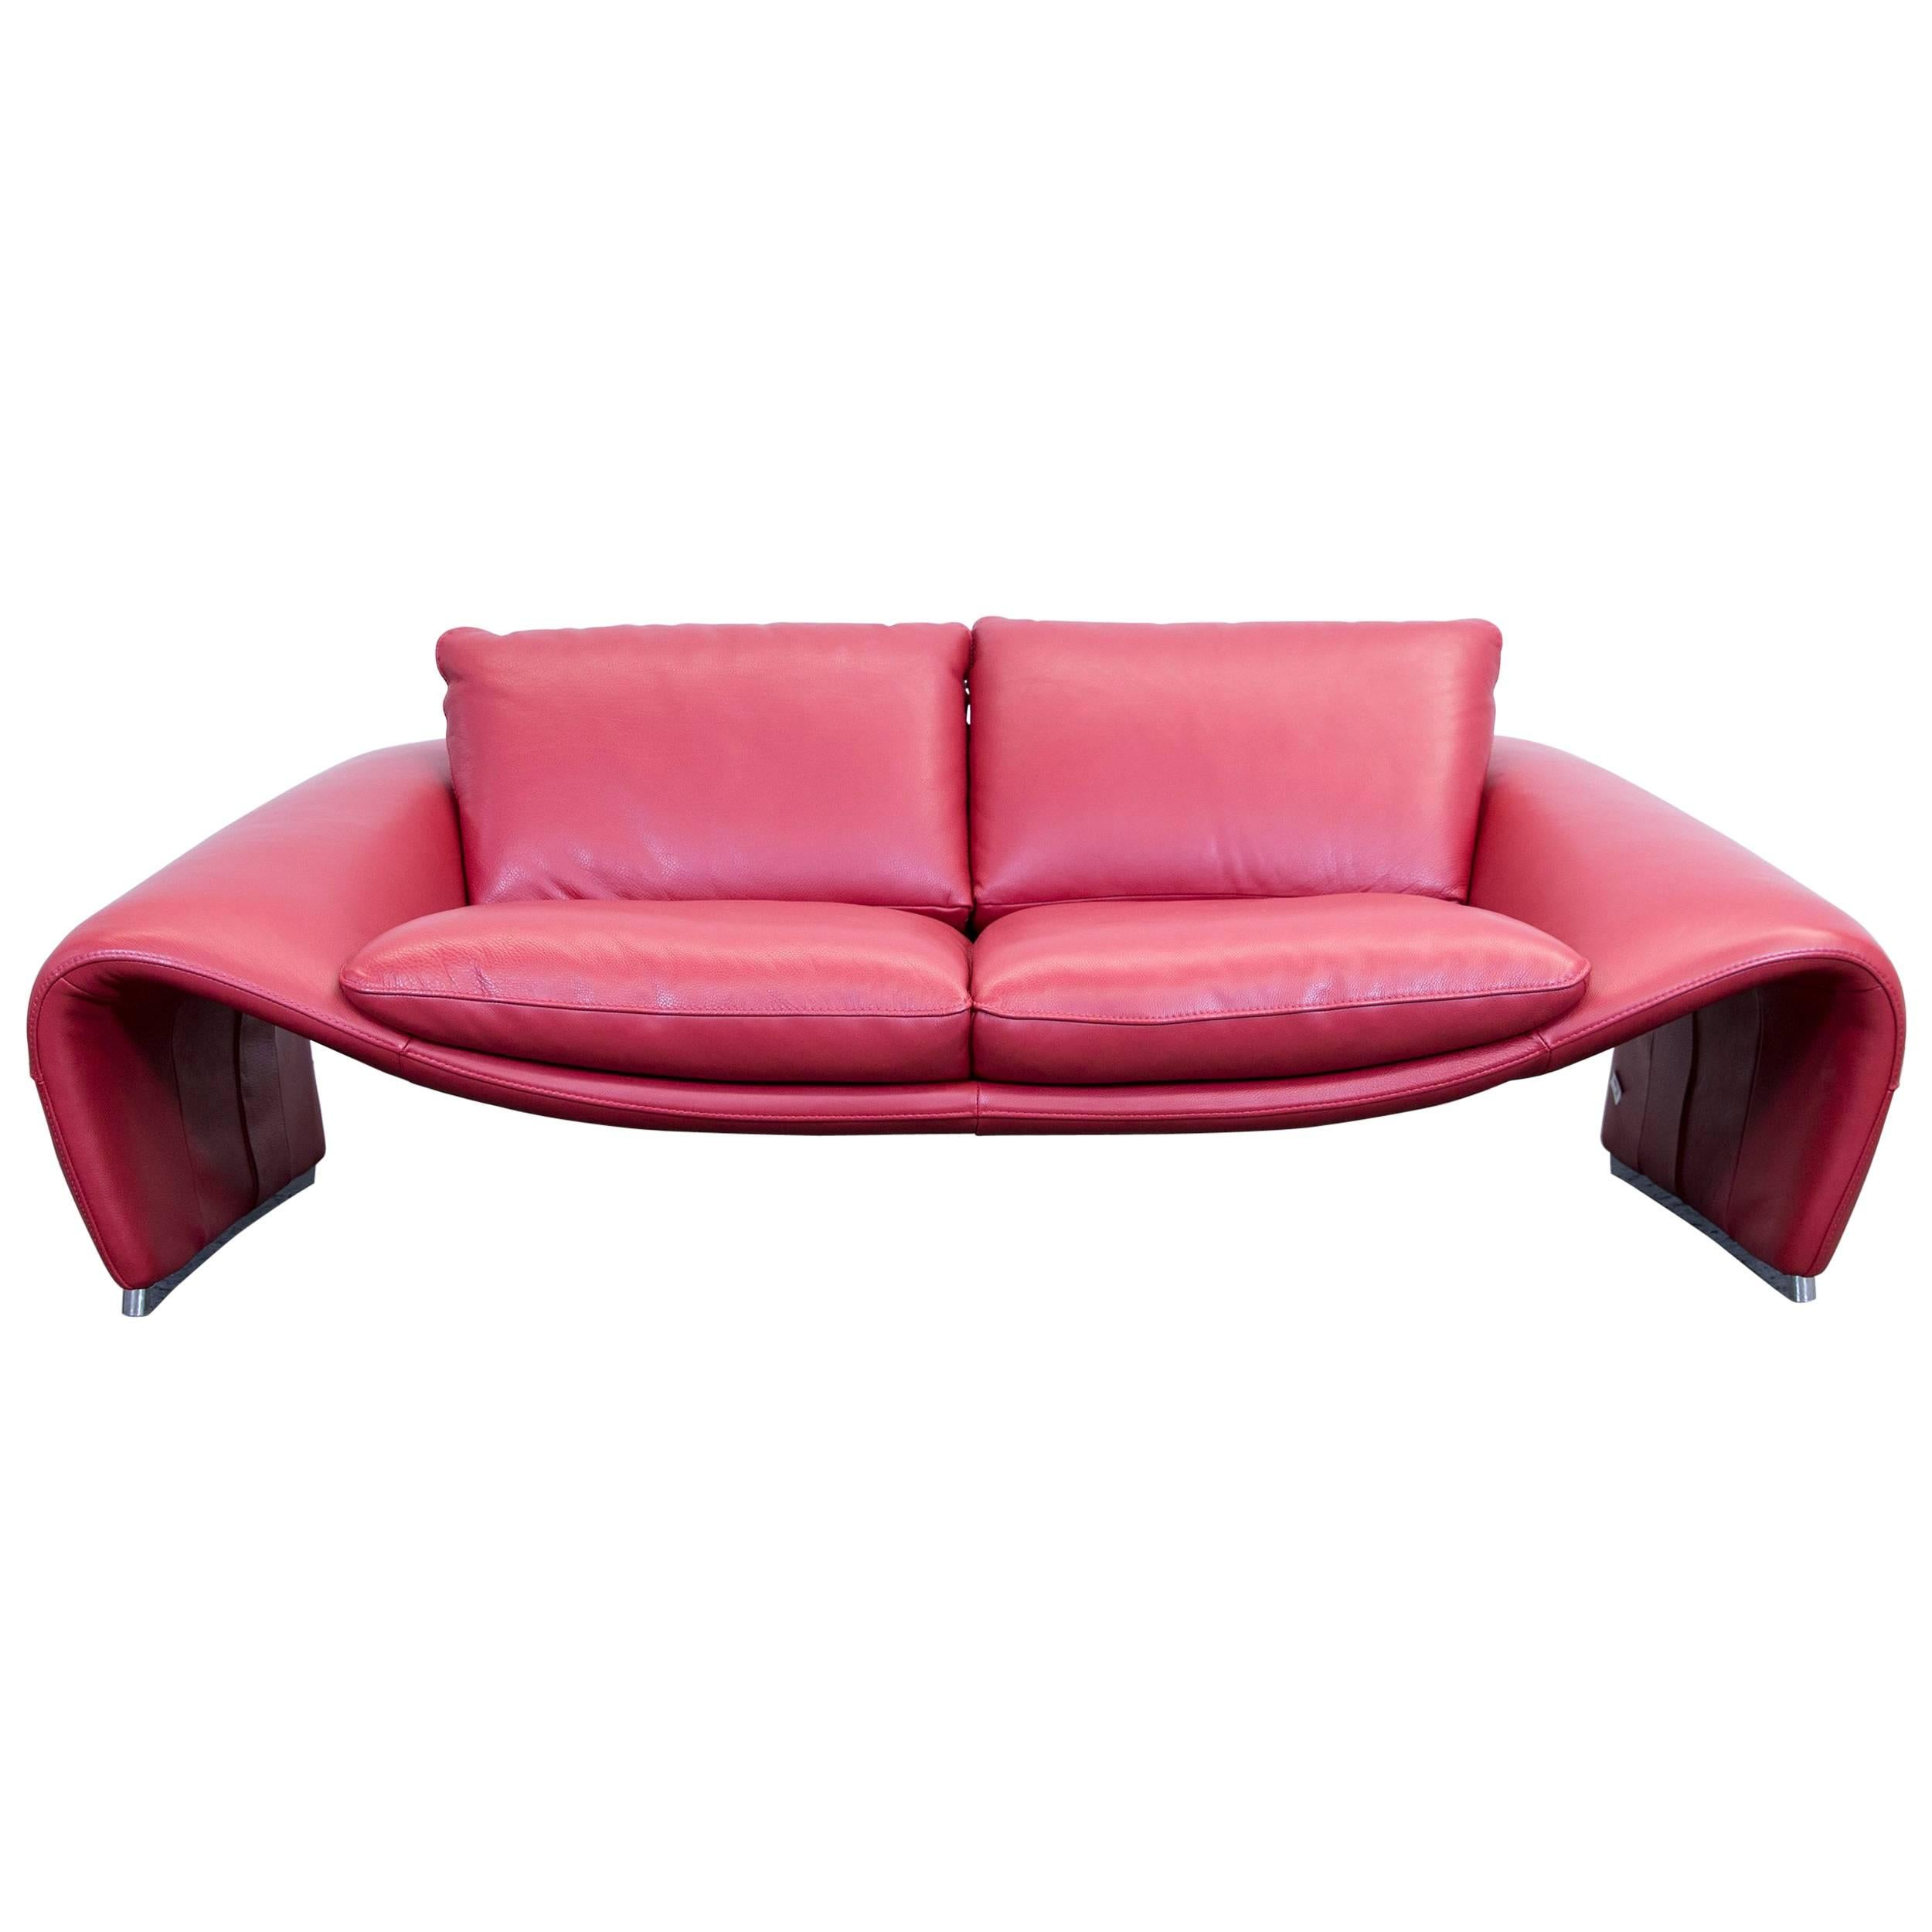 Chateau Du0027Ax Voga Designer Sofa Leather Red Three Seat Function Couch  Modern For